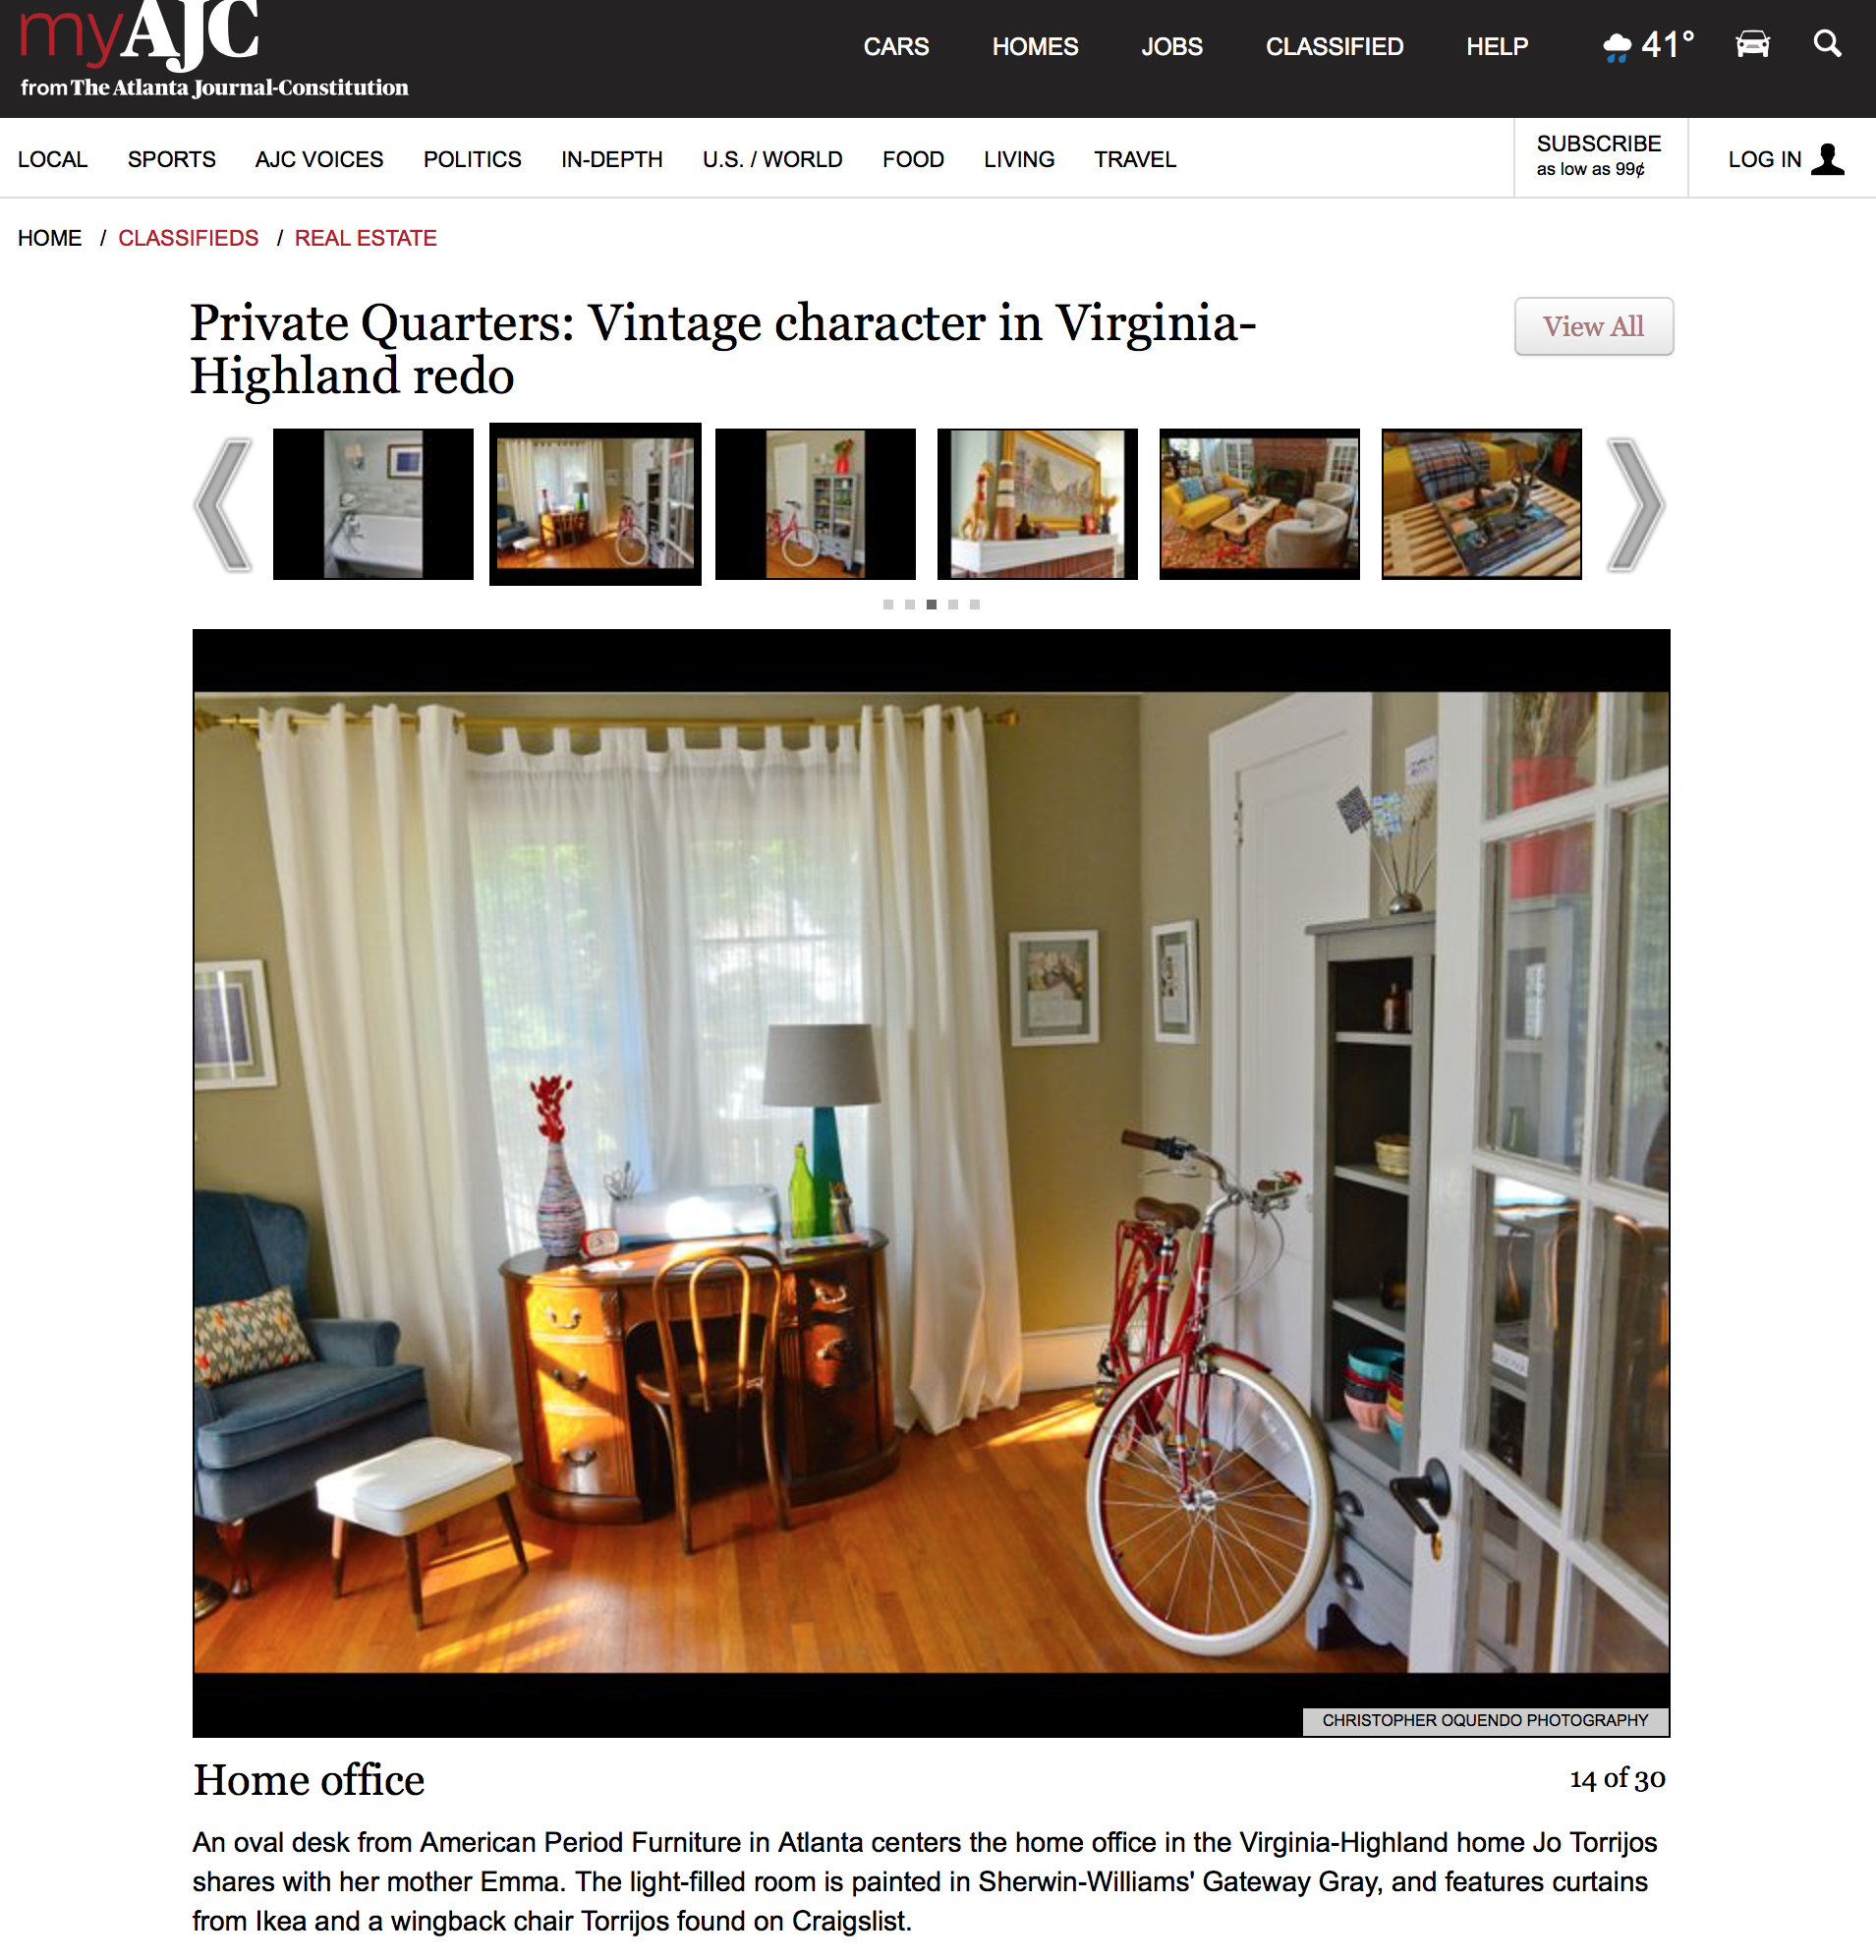 jo-torrijos-a-simpler-design-atlanta-interior-design-virginia-highland-bungalow-ajc-15.png